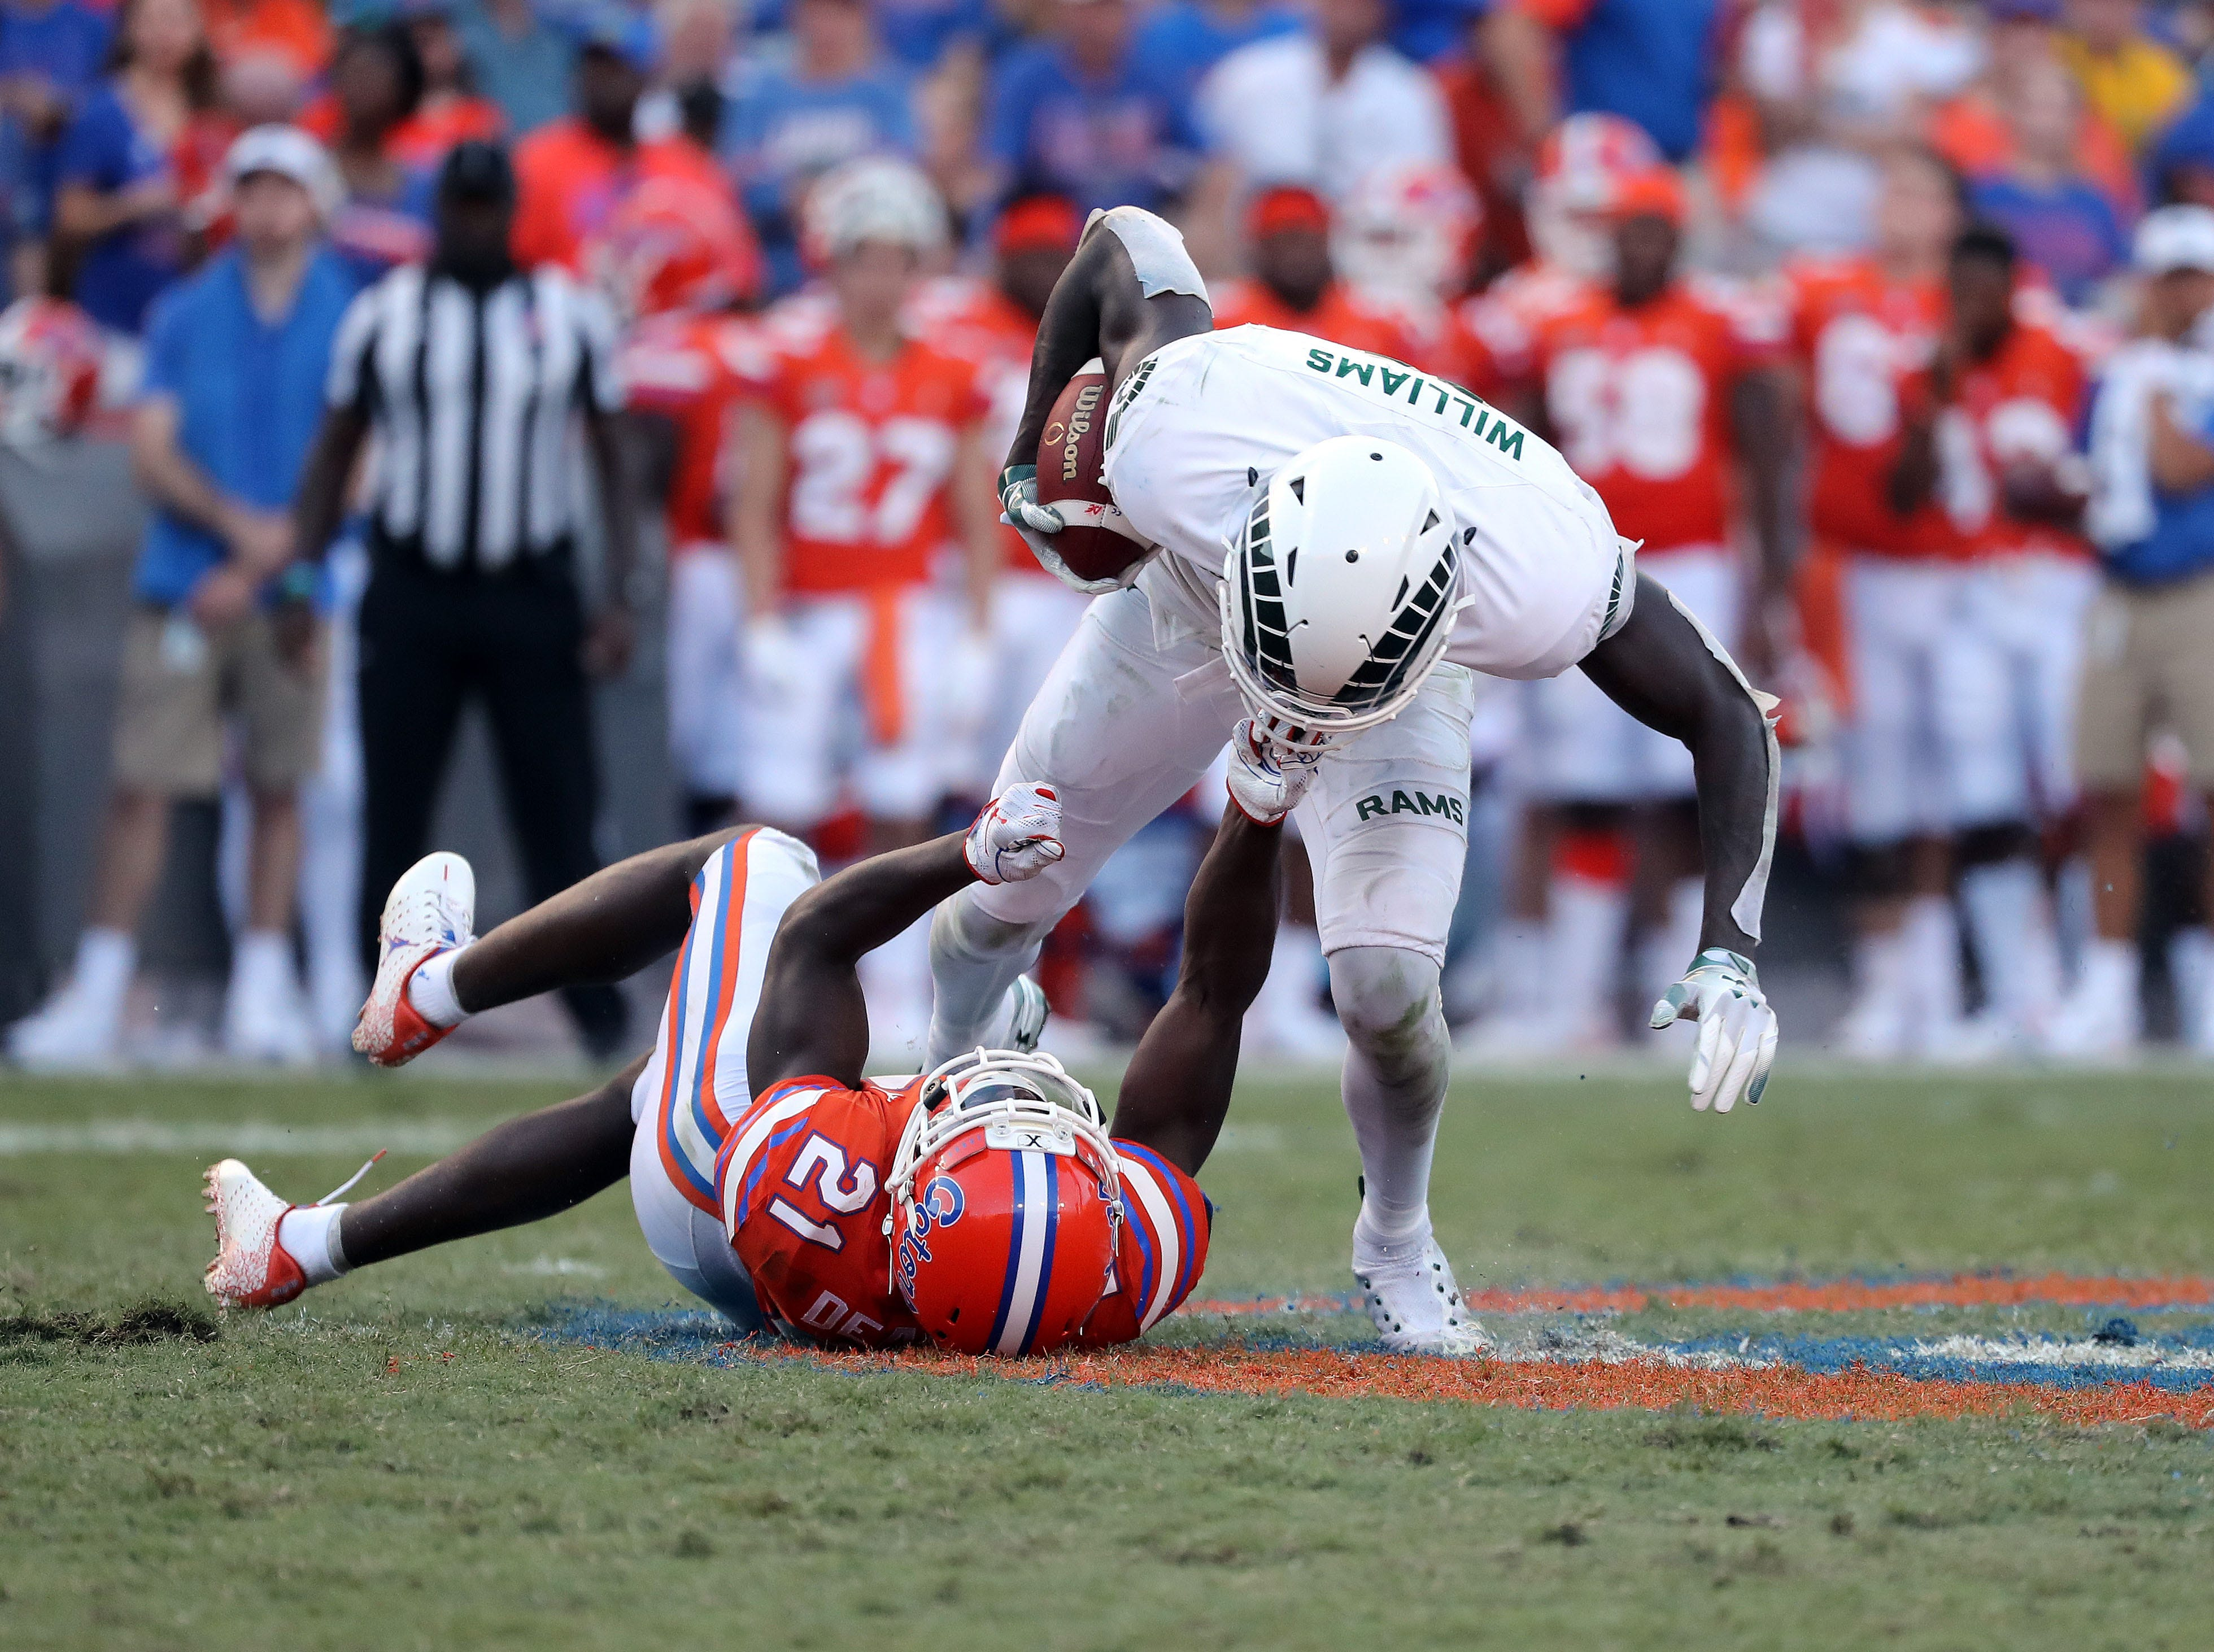 Sep 15, 2018; Gainesville, FL, USA; Colorado State Rams wide receiver Preston Williams (11)  is face masked by Florida Gators defensive back Trey Dean III (21) after catching a pass during the second half at Ben Hill Griffin Stadium. Mandatory Credit: Kim Klement-USA TODAY Sports